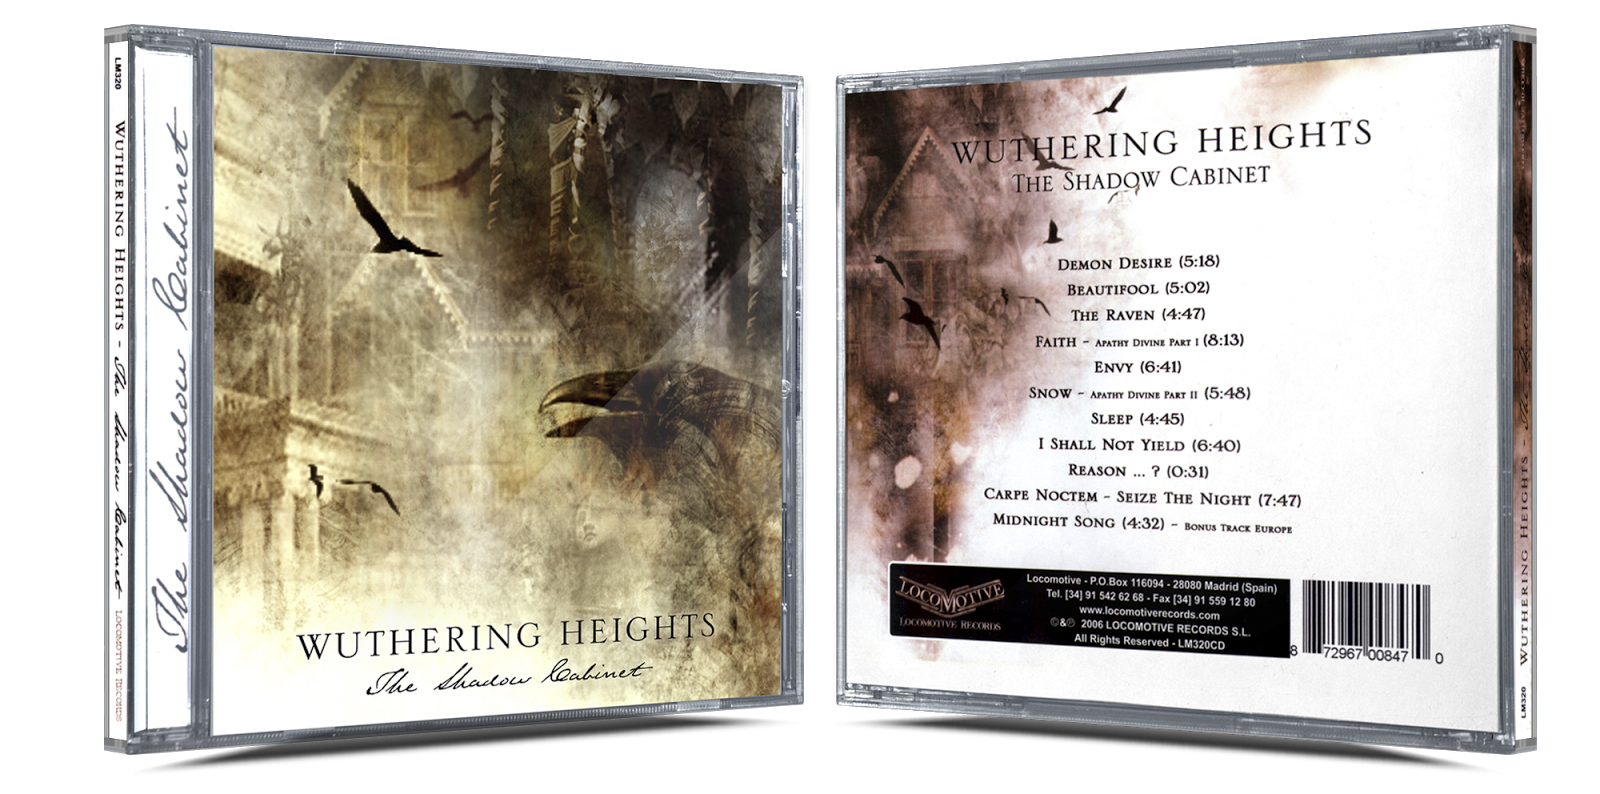 [Pedido] Wuthering Heights - Discografia